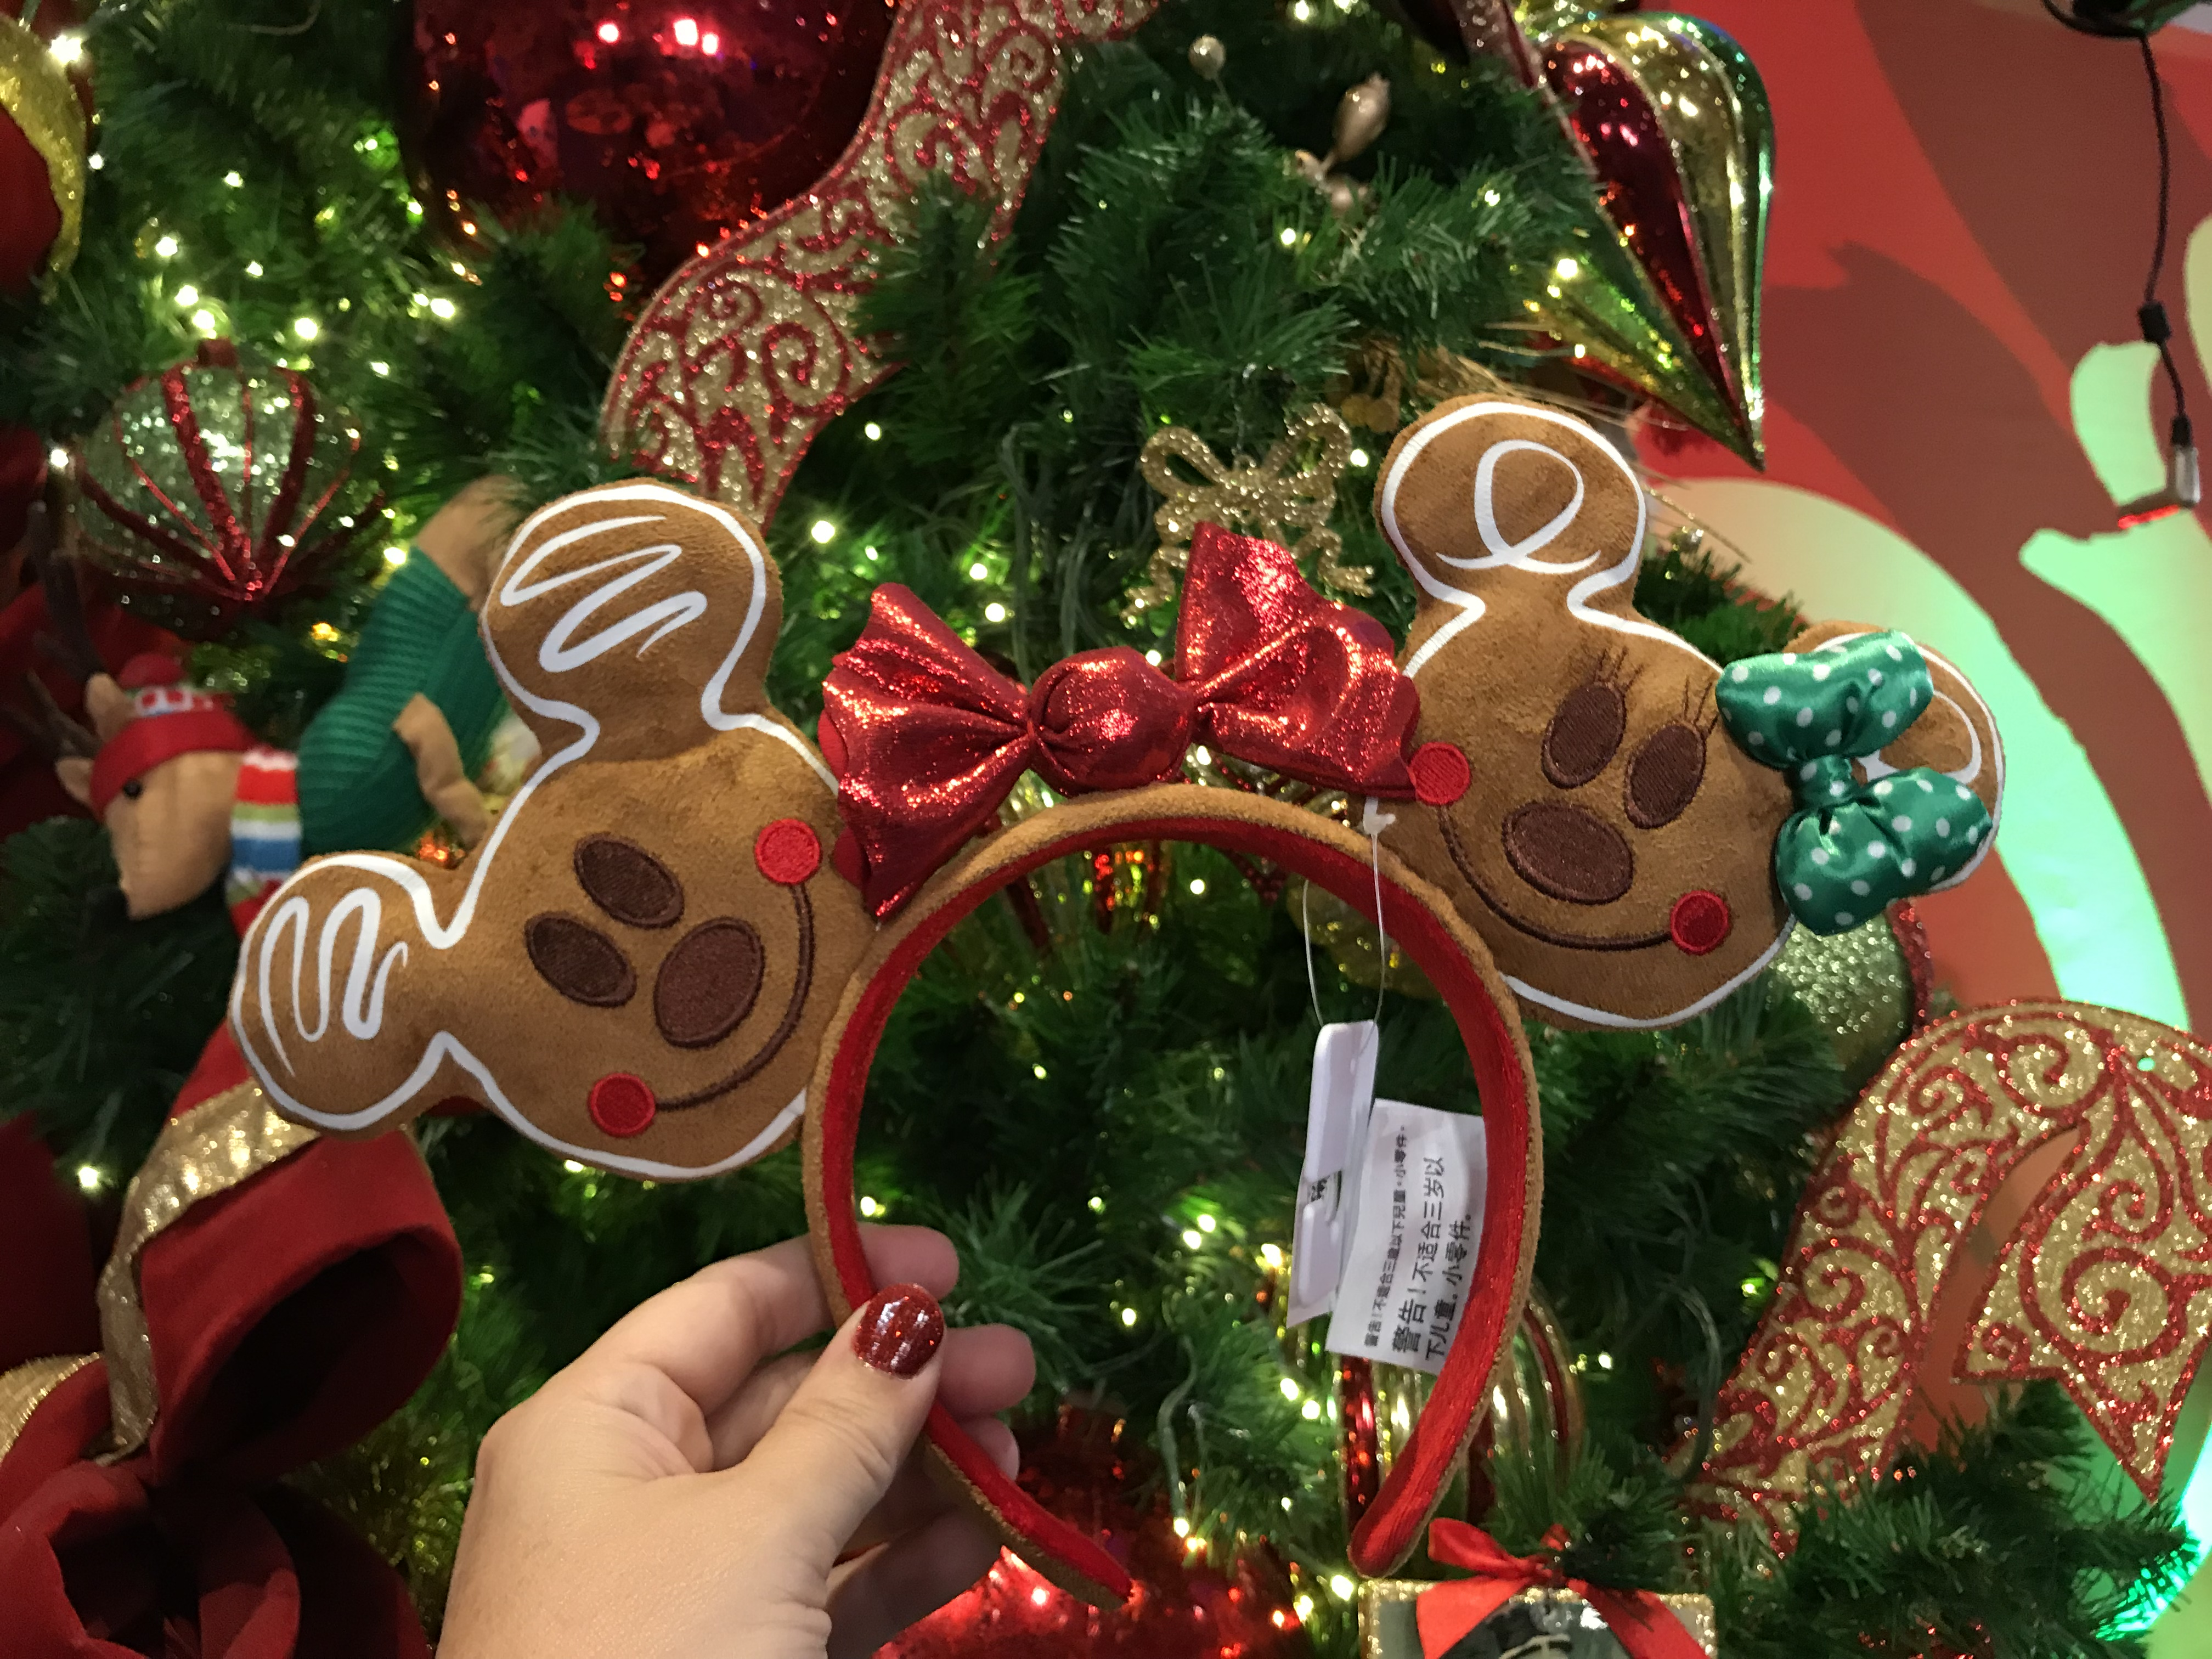 Fabulous Disney Holiday Merchandise Revealed At Disney's Christmas In July 5